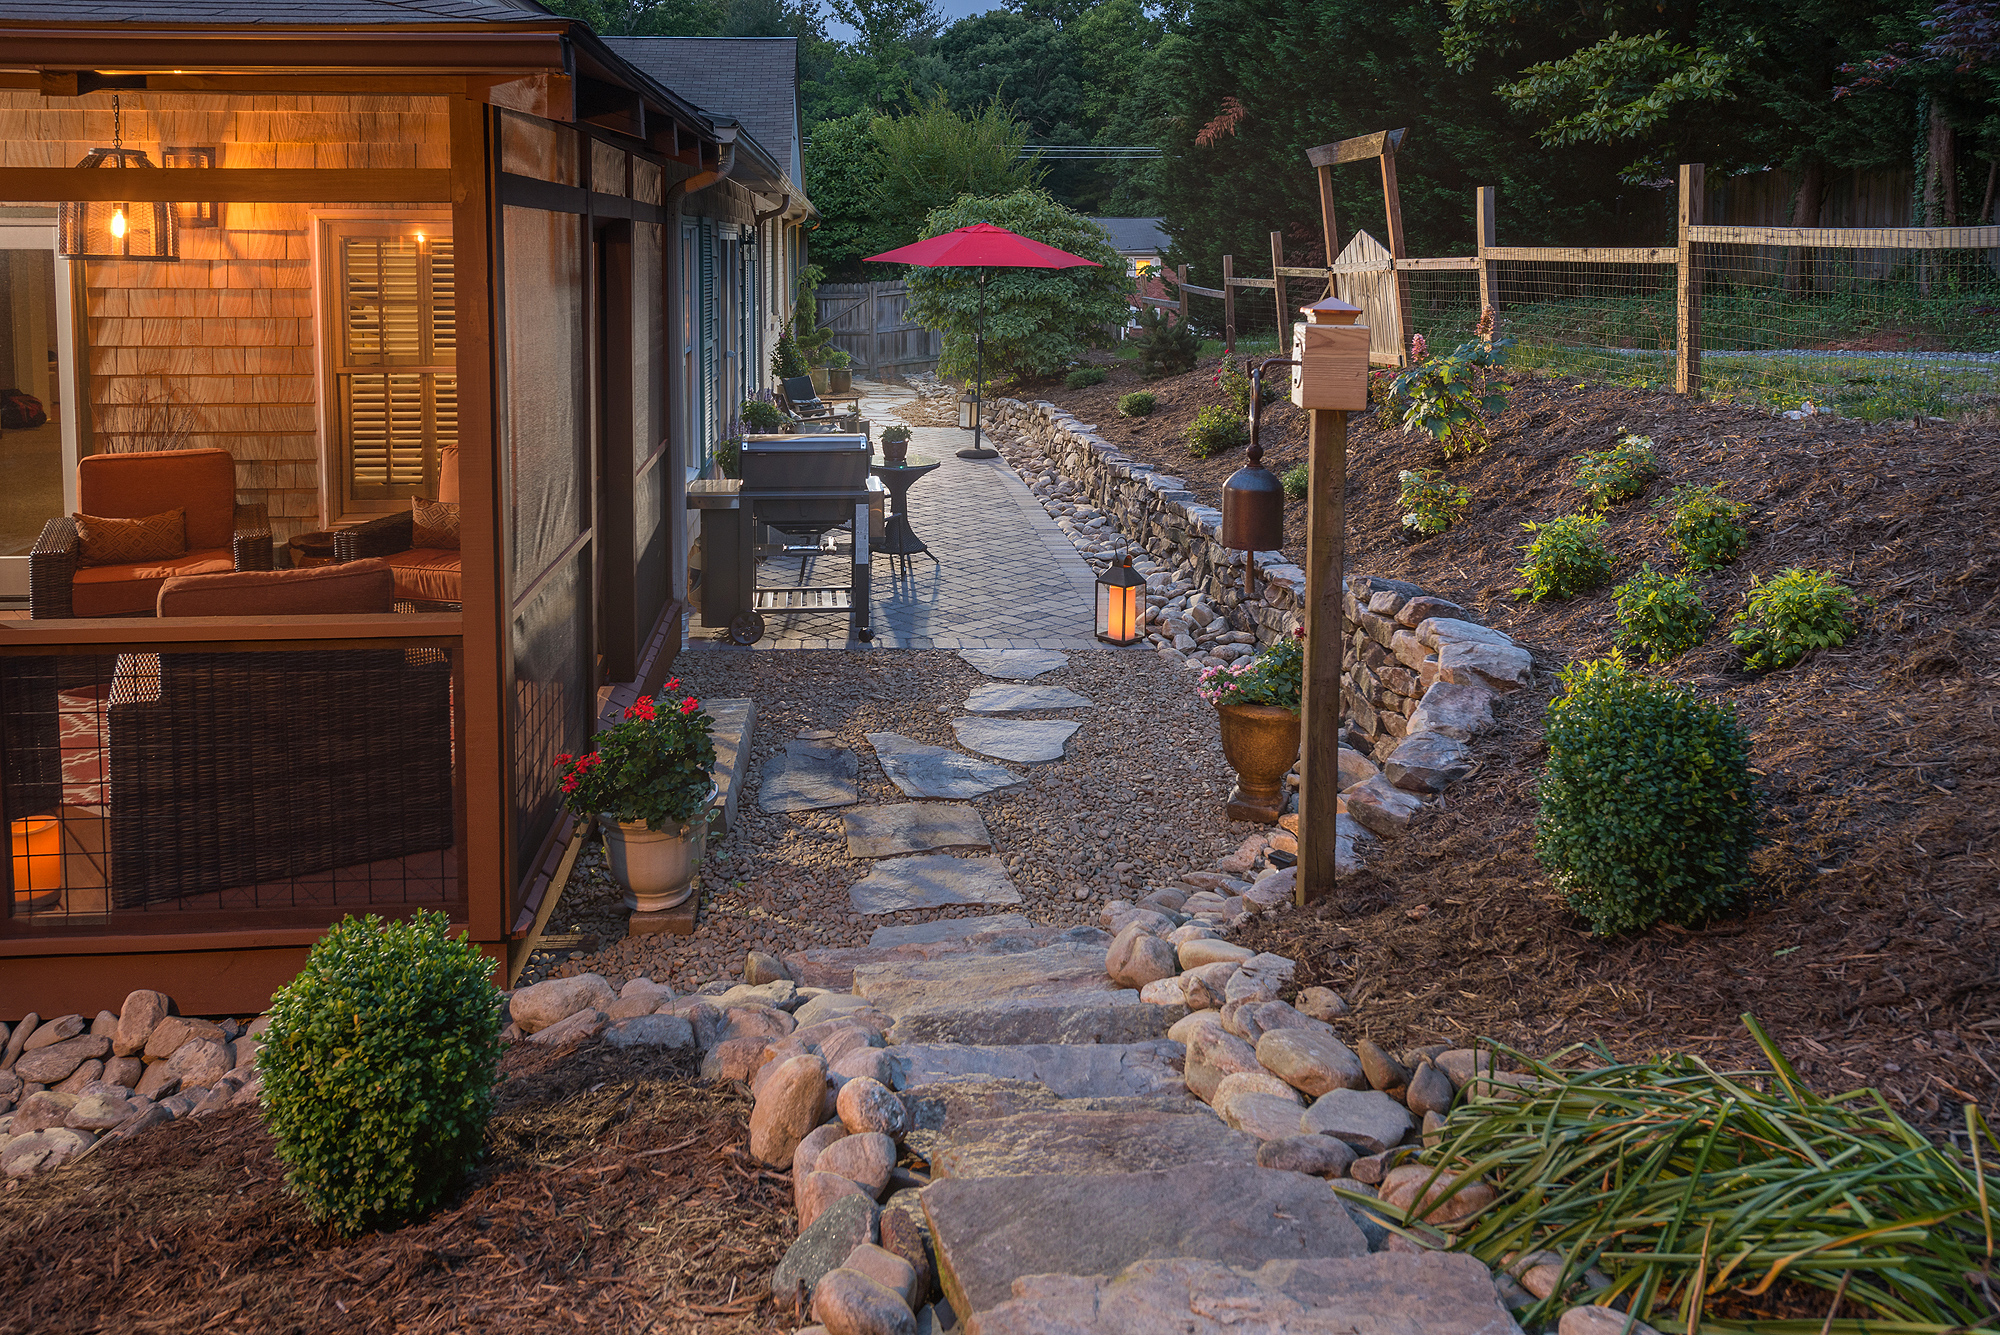 LANDSCAPING - We are Asheville landscapers that transform your outdoor spaces with custom installations of regionally appropriate plant and rock life that are less